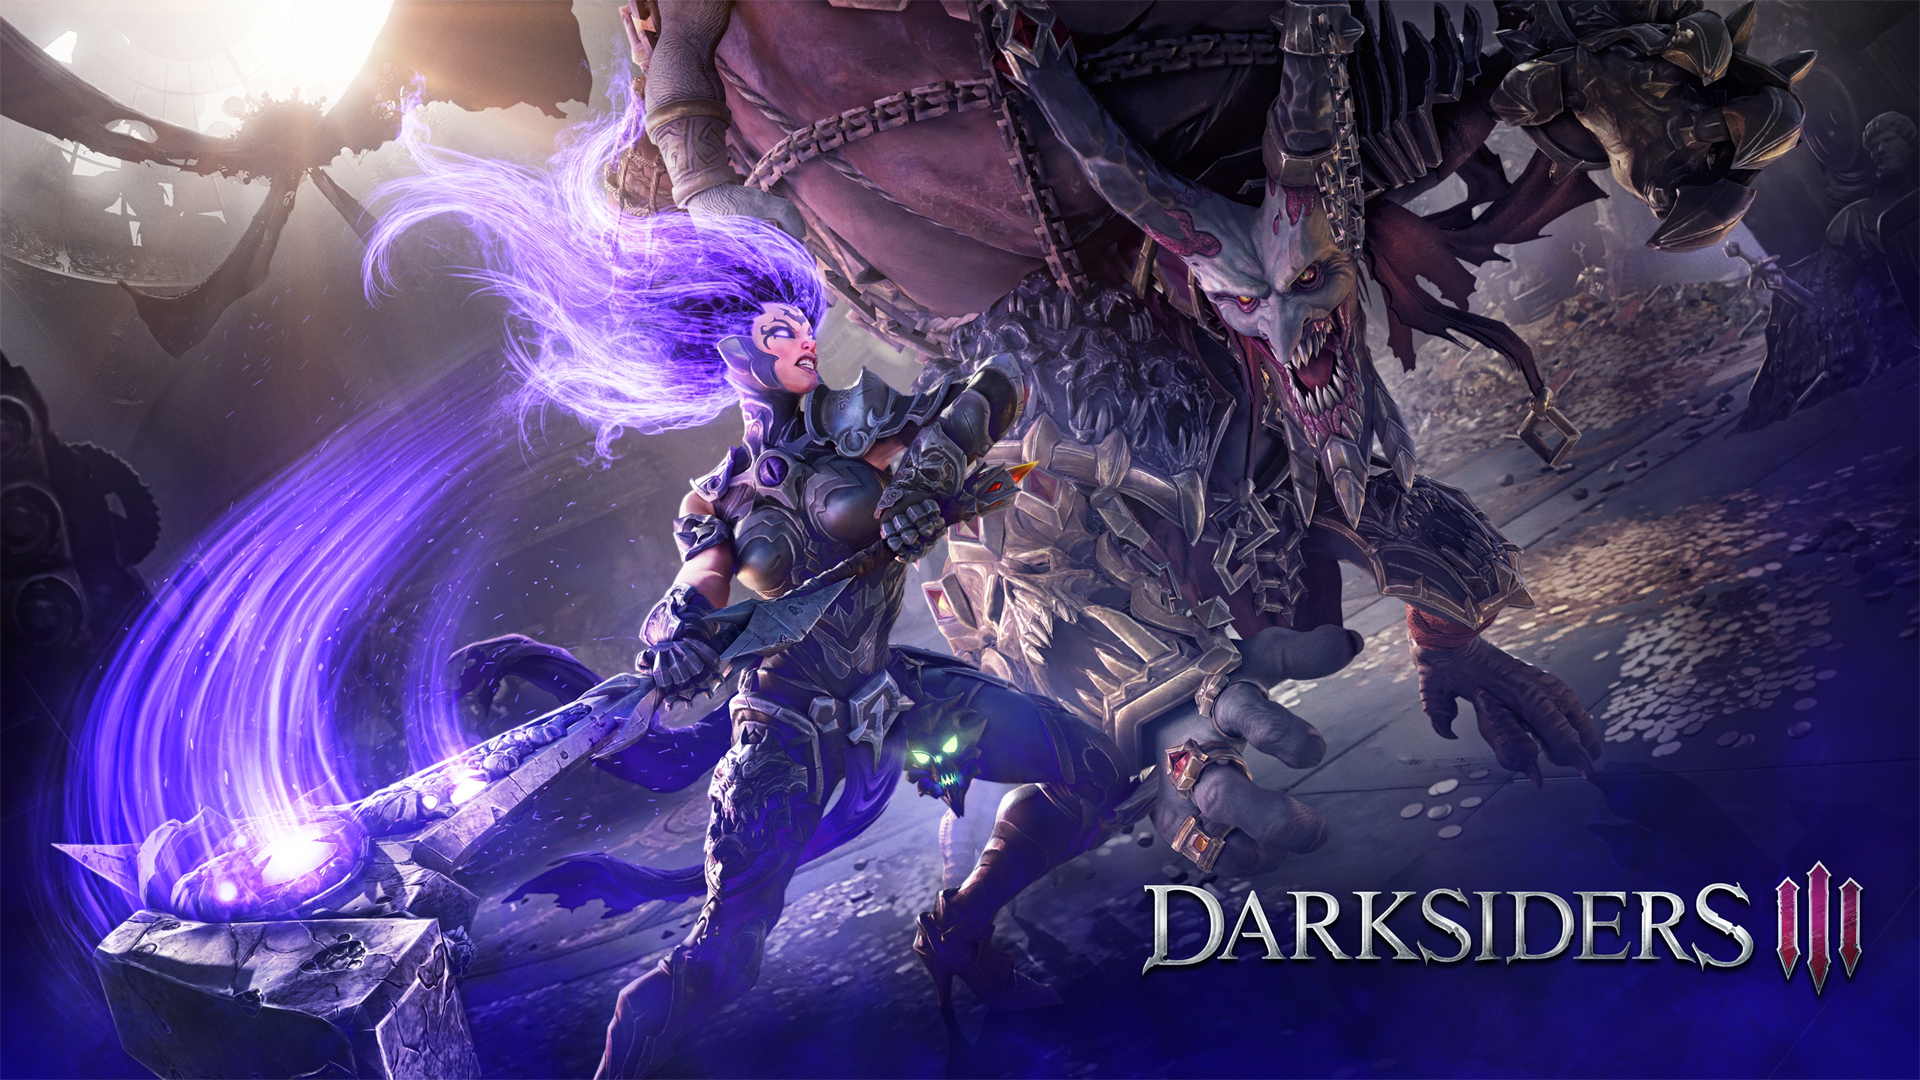 Fury against demon Wallpaper from Darksiders III   gamepressurecom 1920x1080